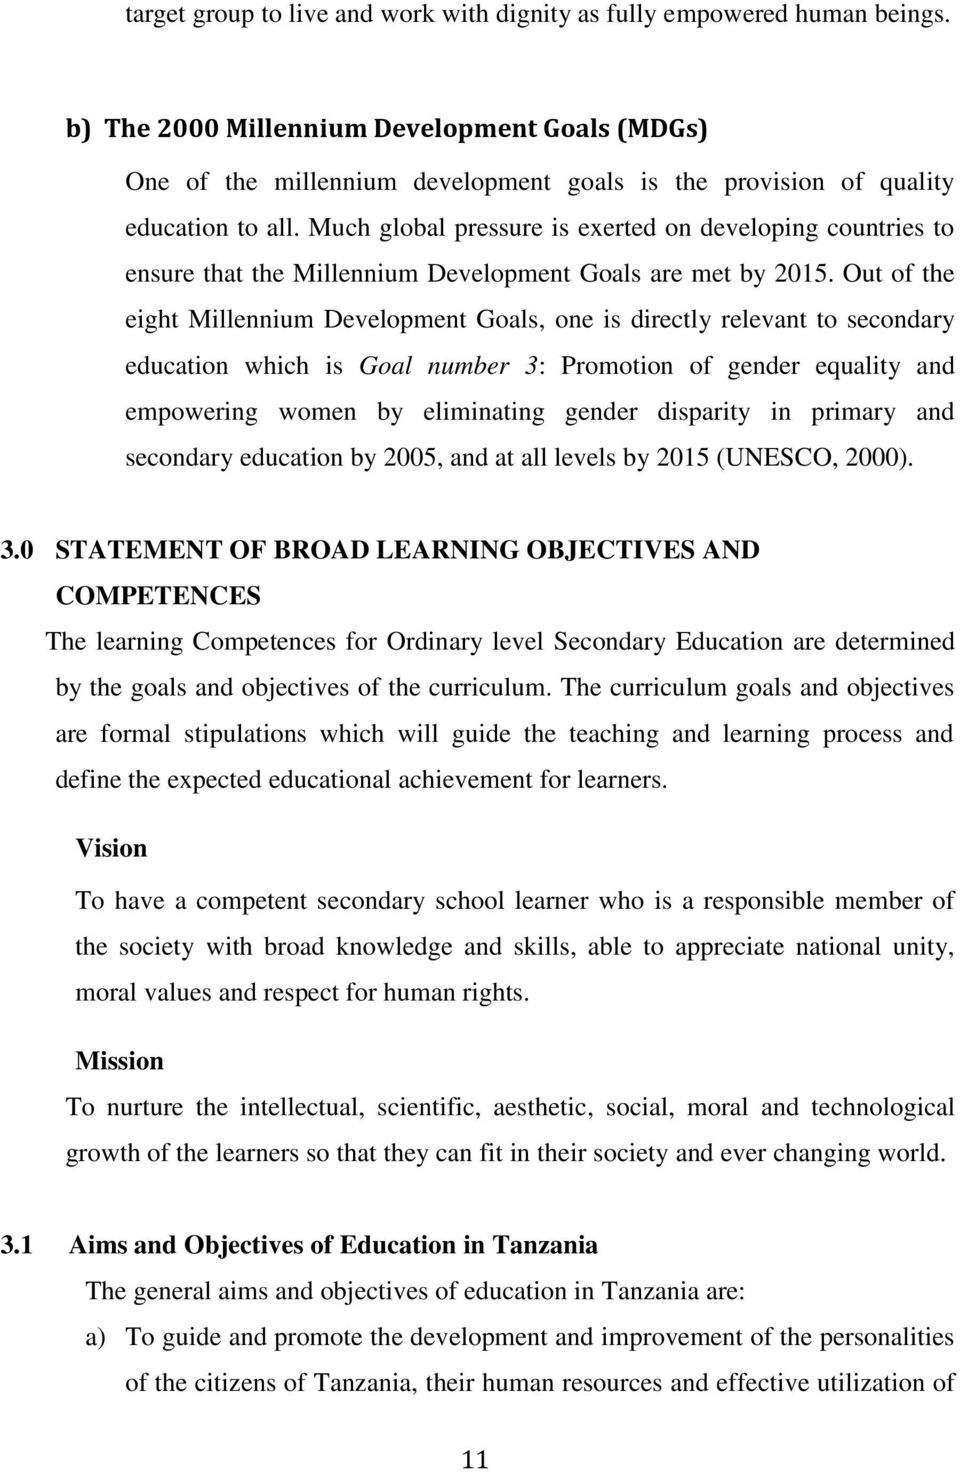 ministry of education and vocational training tanzania institute  much global pressure is exerted on developing countries to ensure that the millennium development goals are